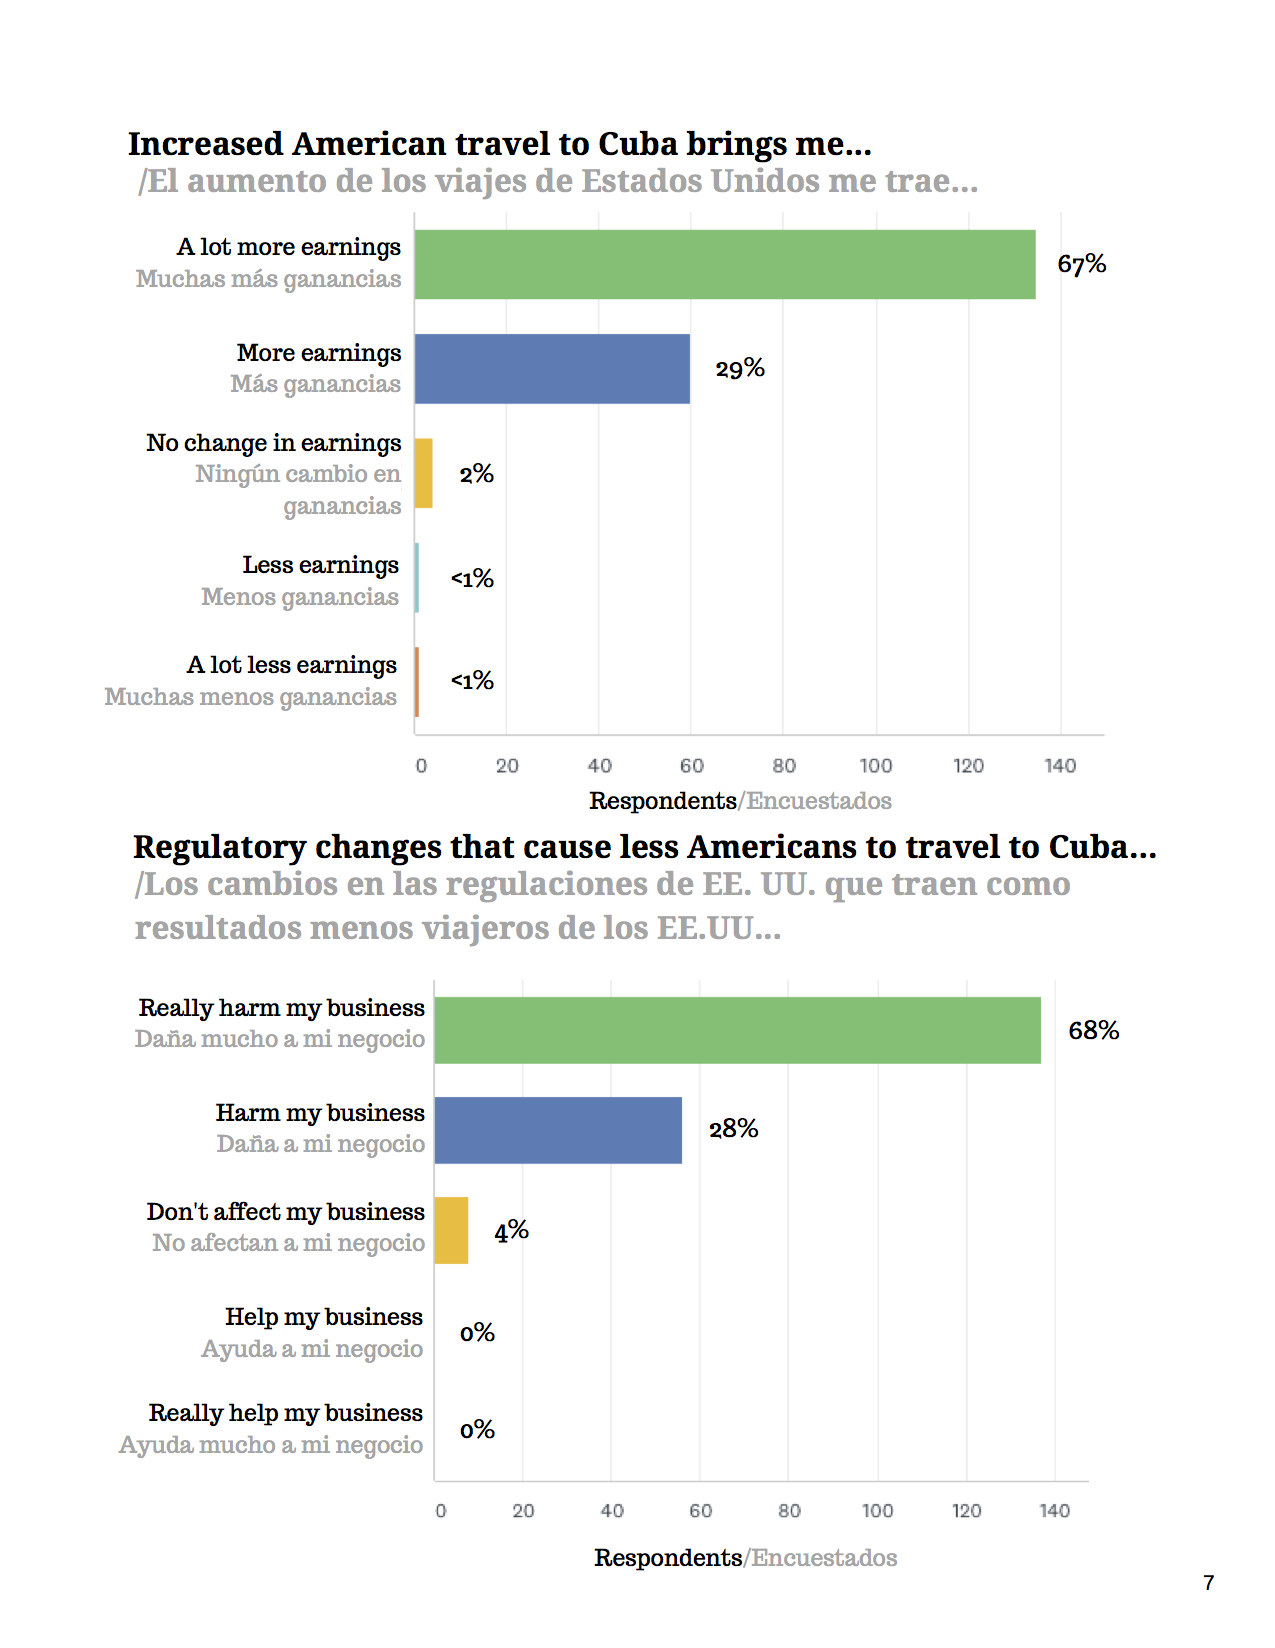 NETXMay 2019 Survey Finds Cuban Private Sector Relies Heavily on American Visitors and Cubans Are _Very Worried_ About Impending Restrictions on Travel (1).jpg